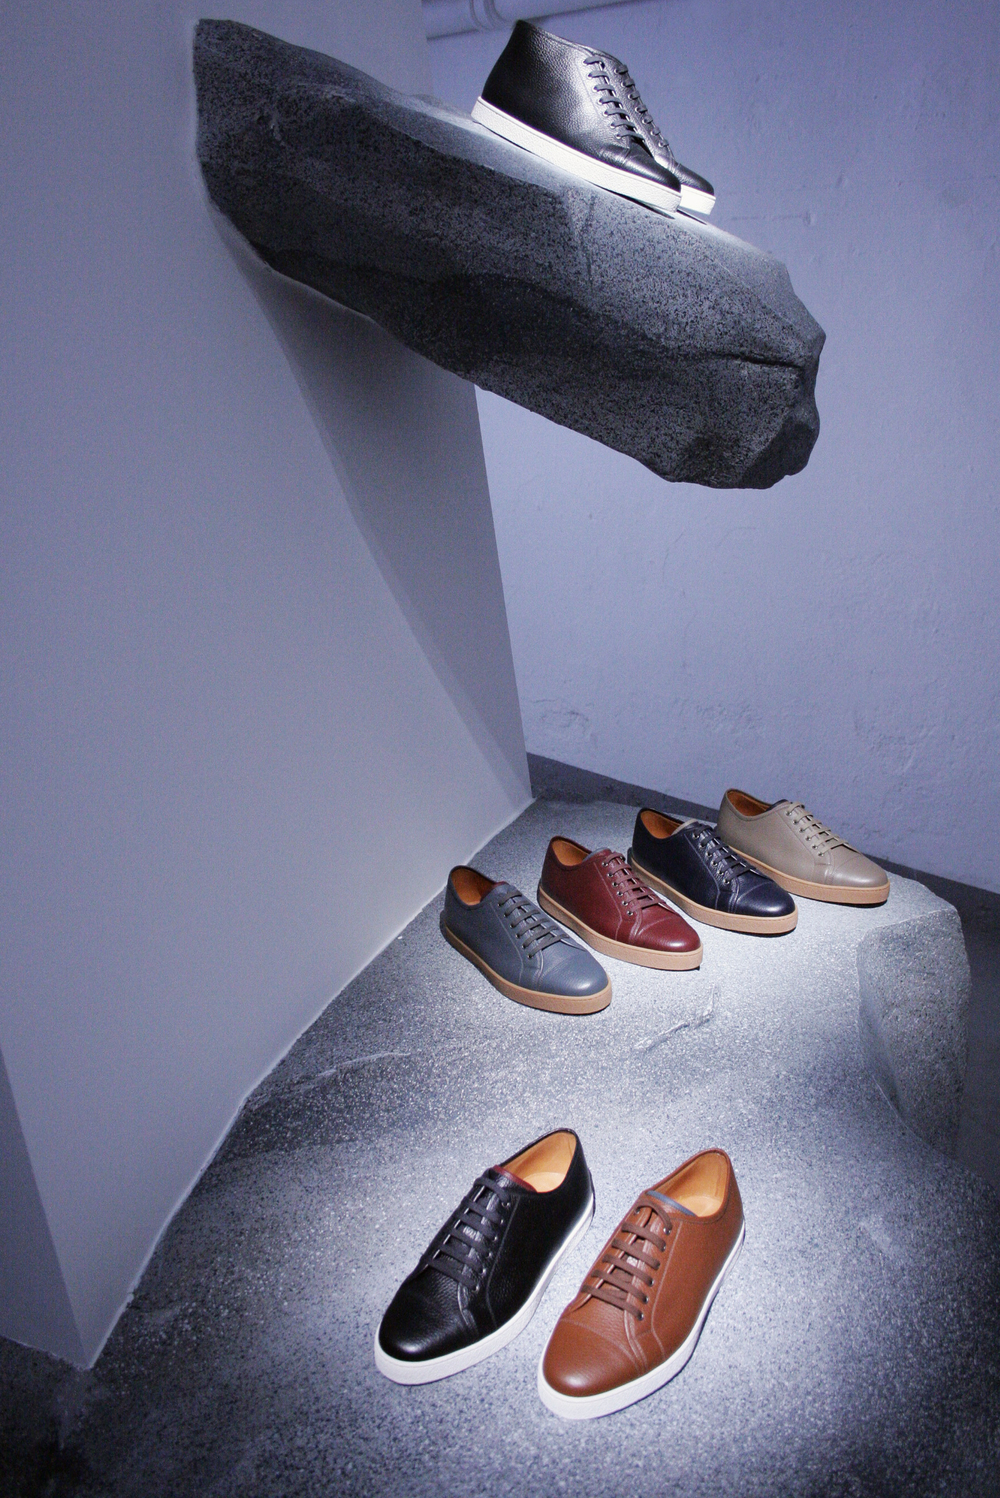 John Lobb AW16 at London Collections Men